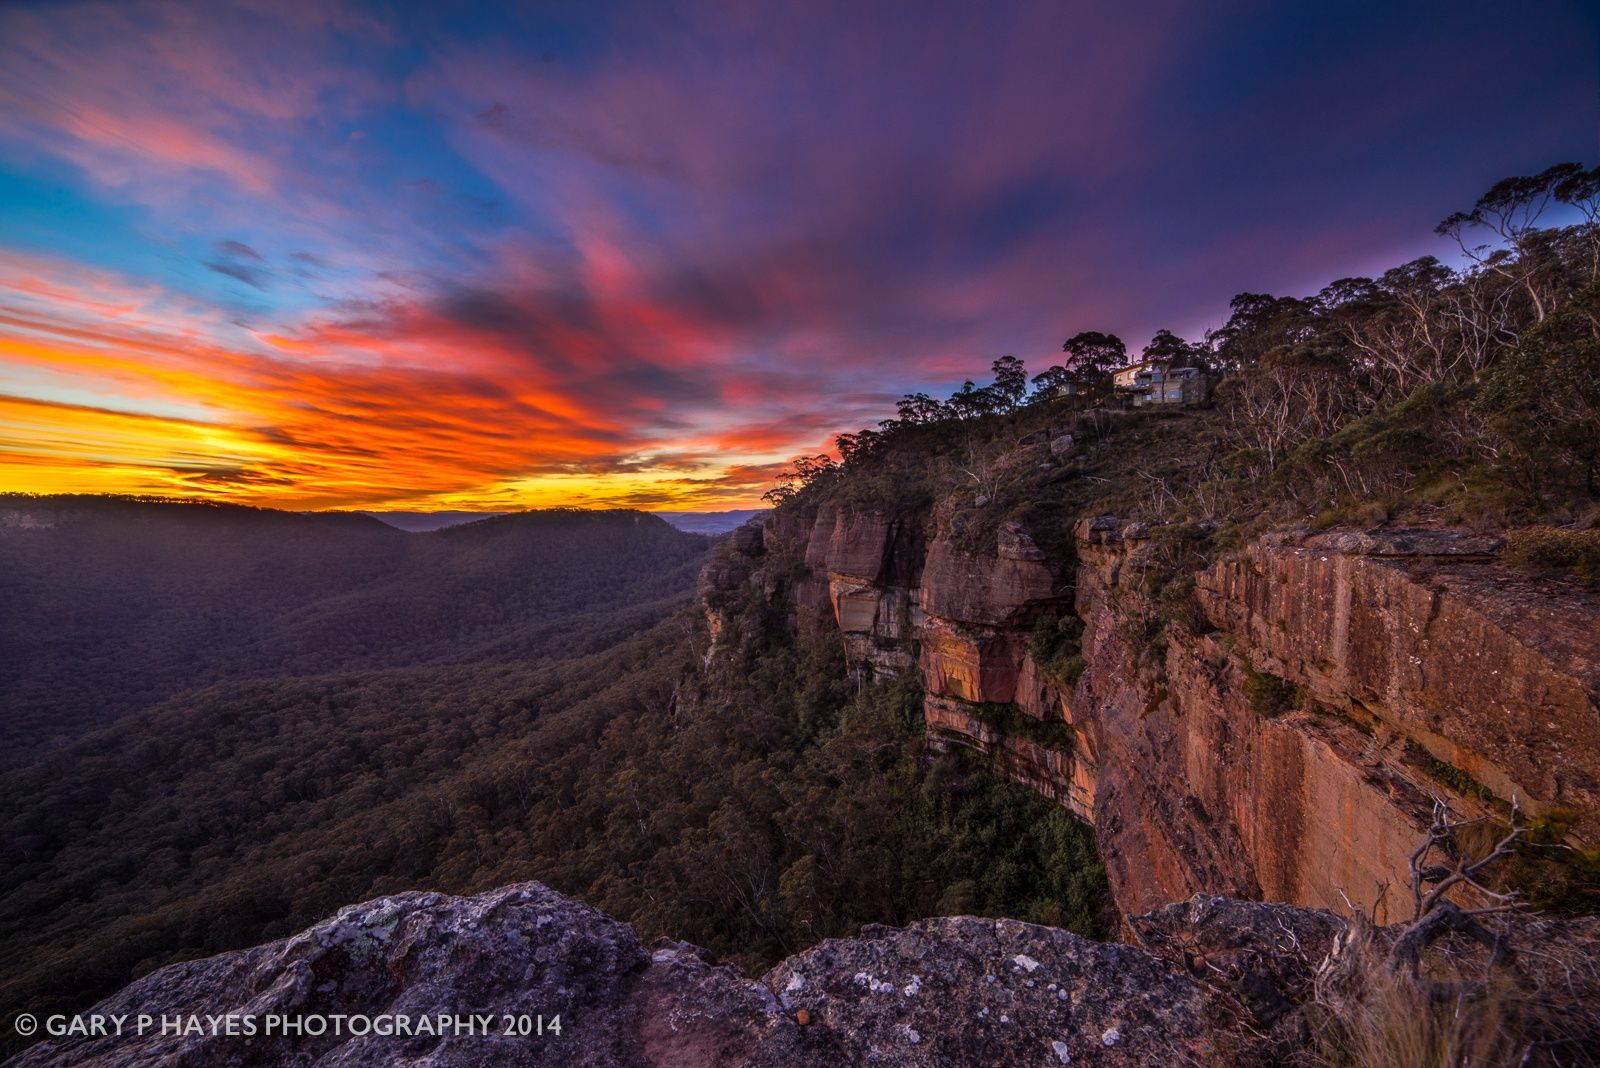 Photograph Chasing Angels By Gary Hayes On 500px Blue Mountains Australia Landscape Photography Sunset Photography